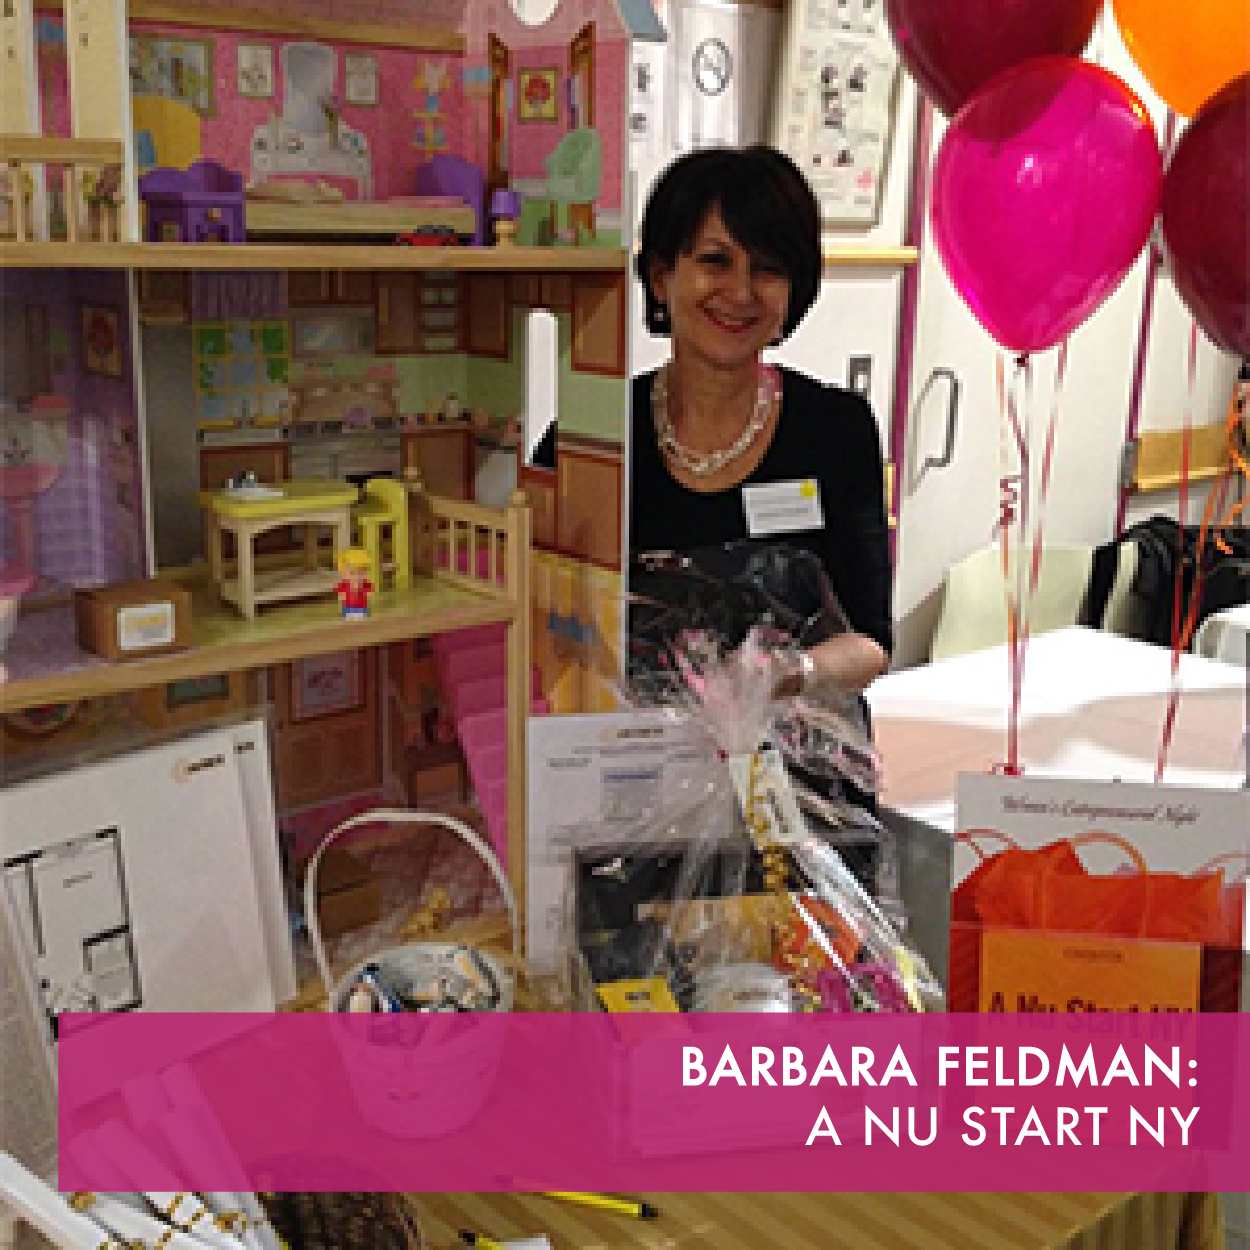 A Nu START NY, Inc. offers personal, professional and caring service to assist older adults and their families with relocating, downsizing and/or modifying their home environment.